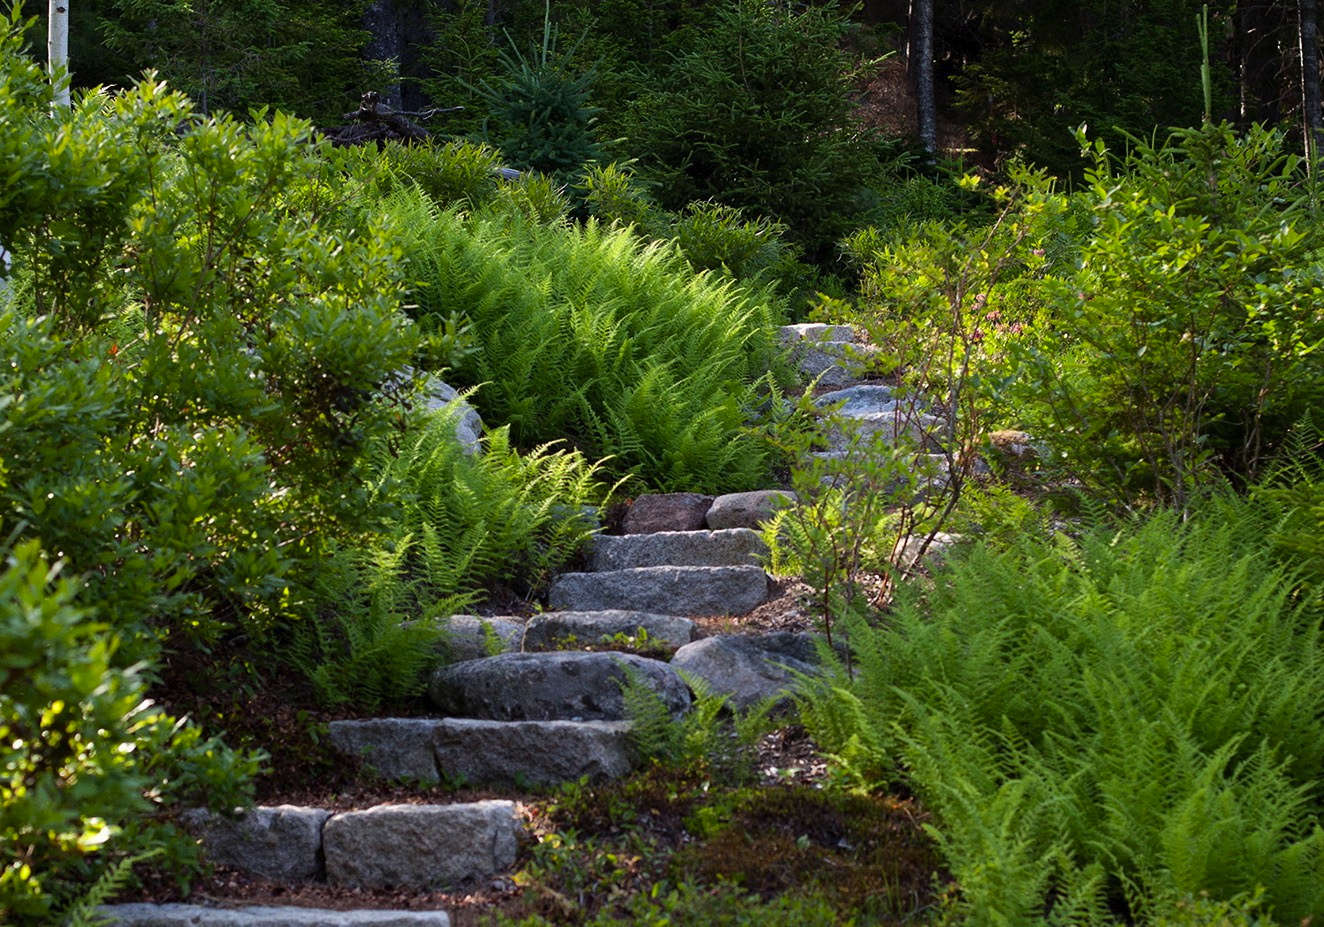 Granite stairs bordered by ferns are cut into the hillside.